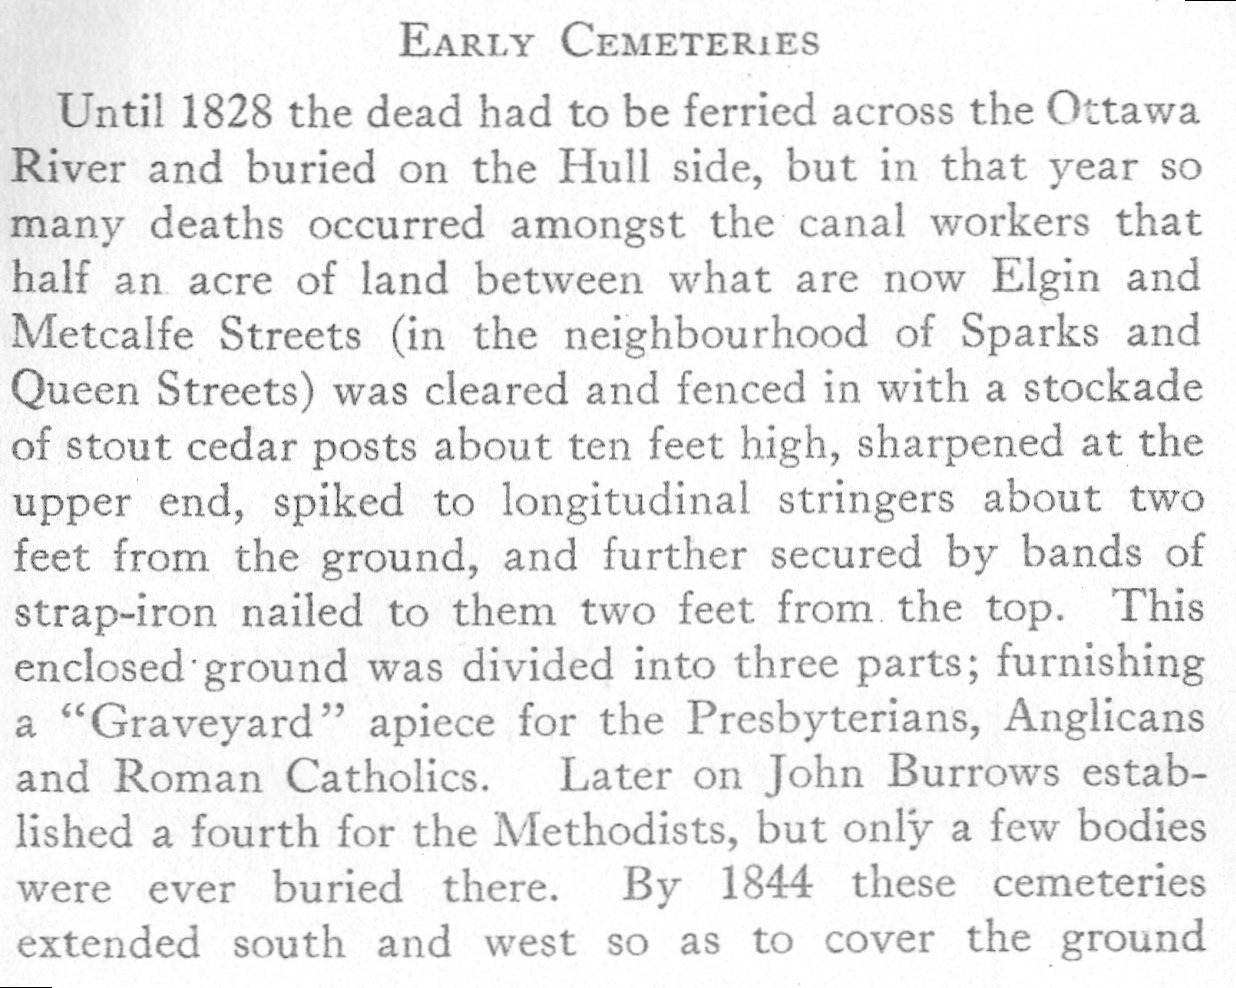 Early Cemeteries in Ottawa, Ontario, Canada and Hull, Quebec